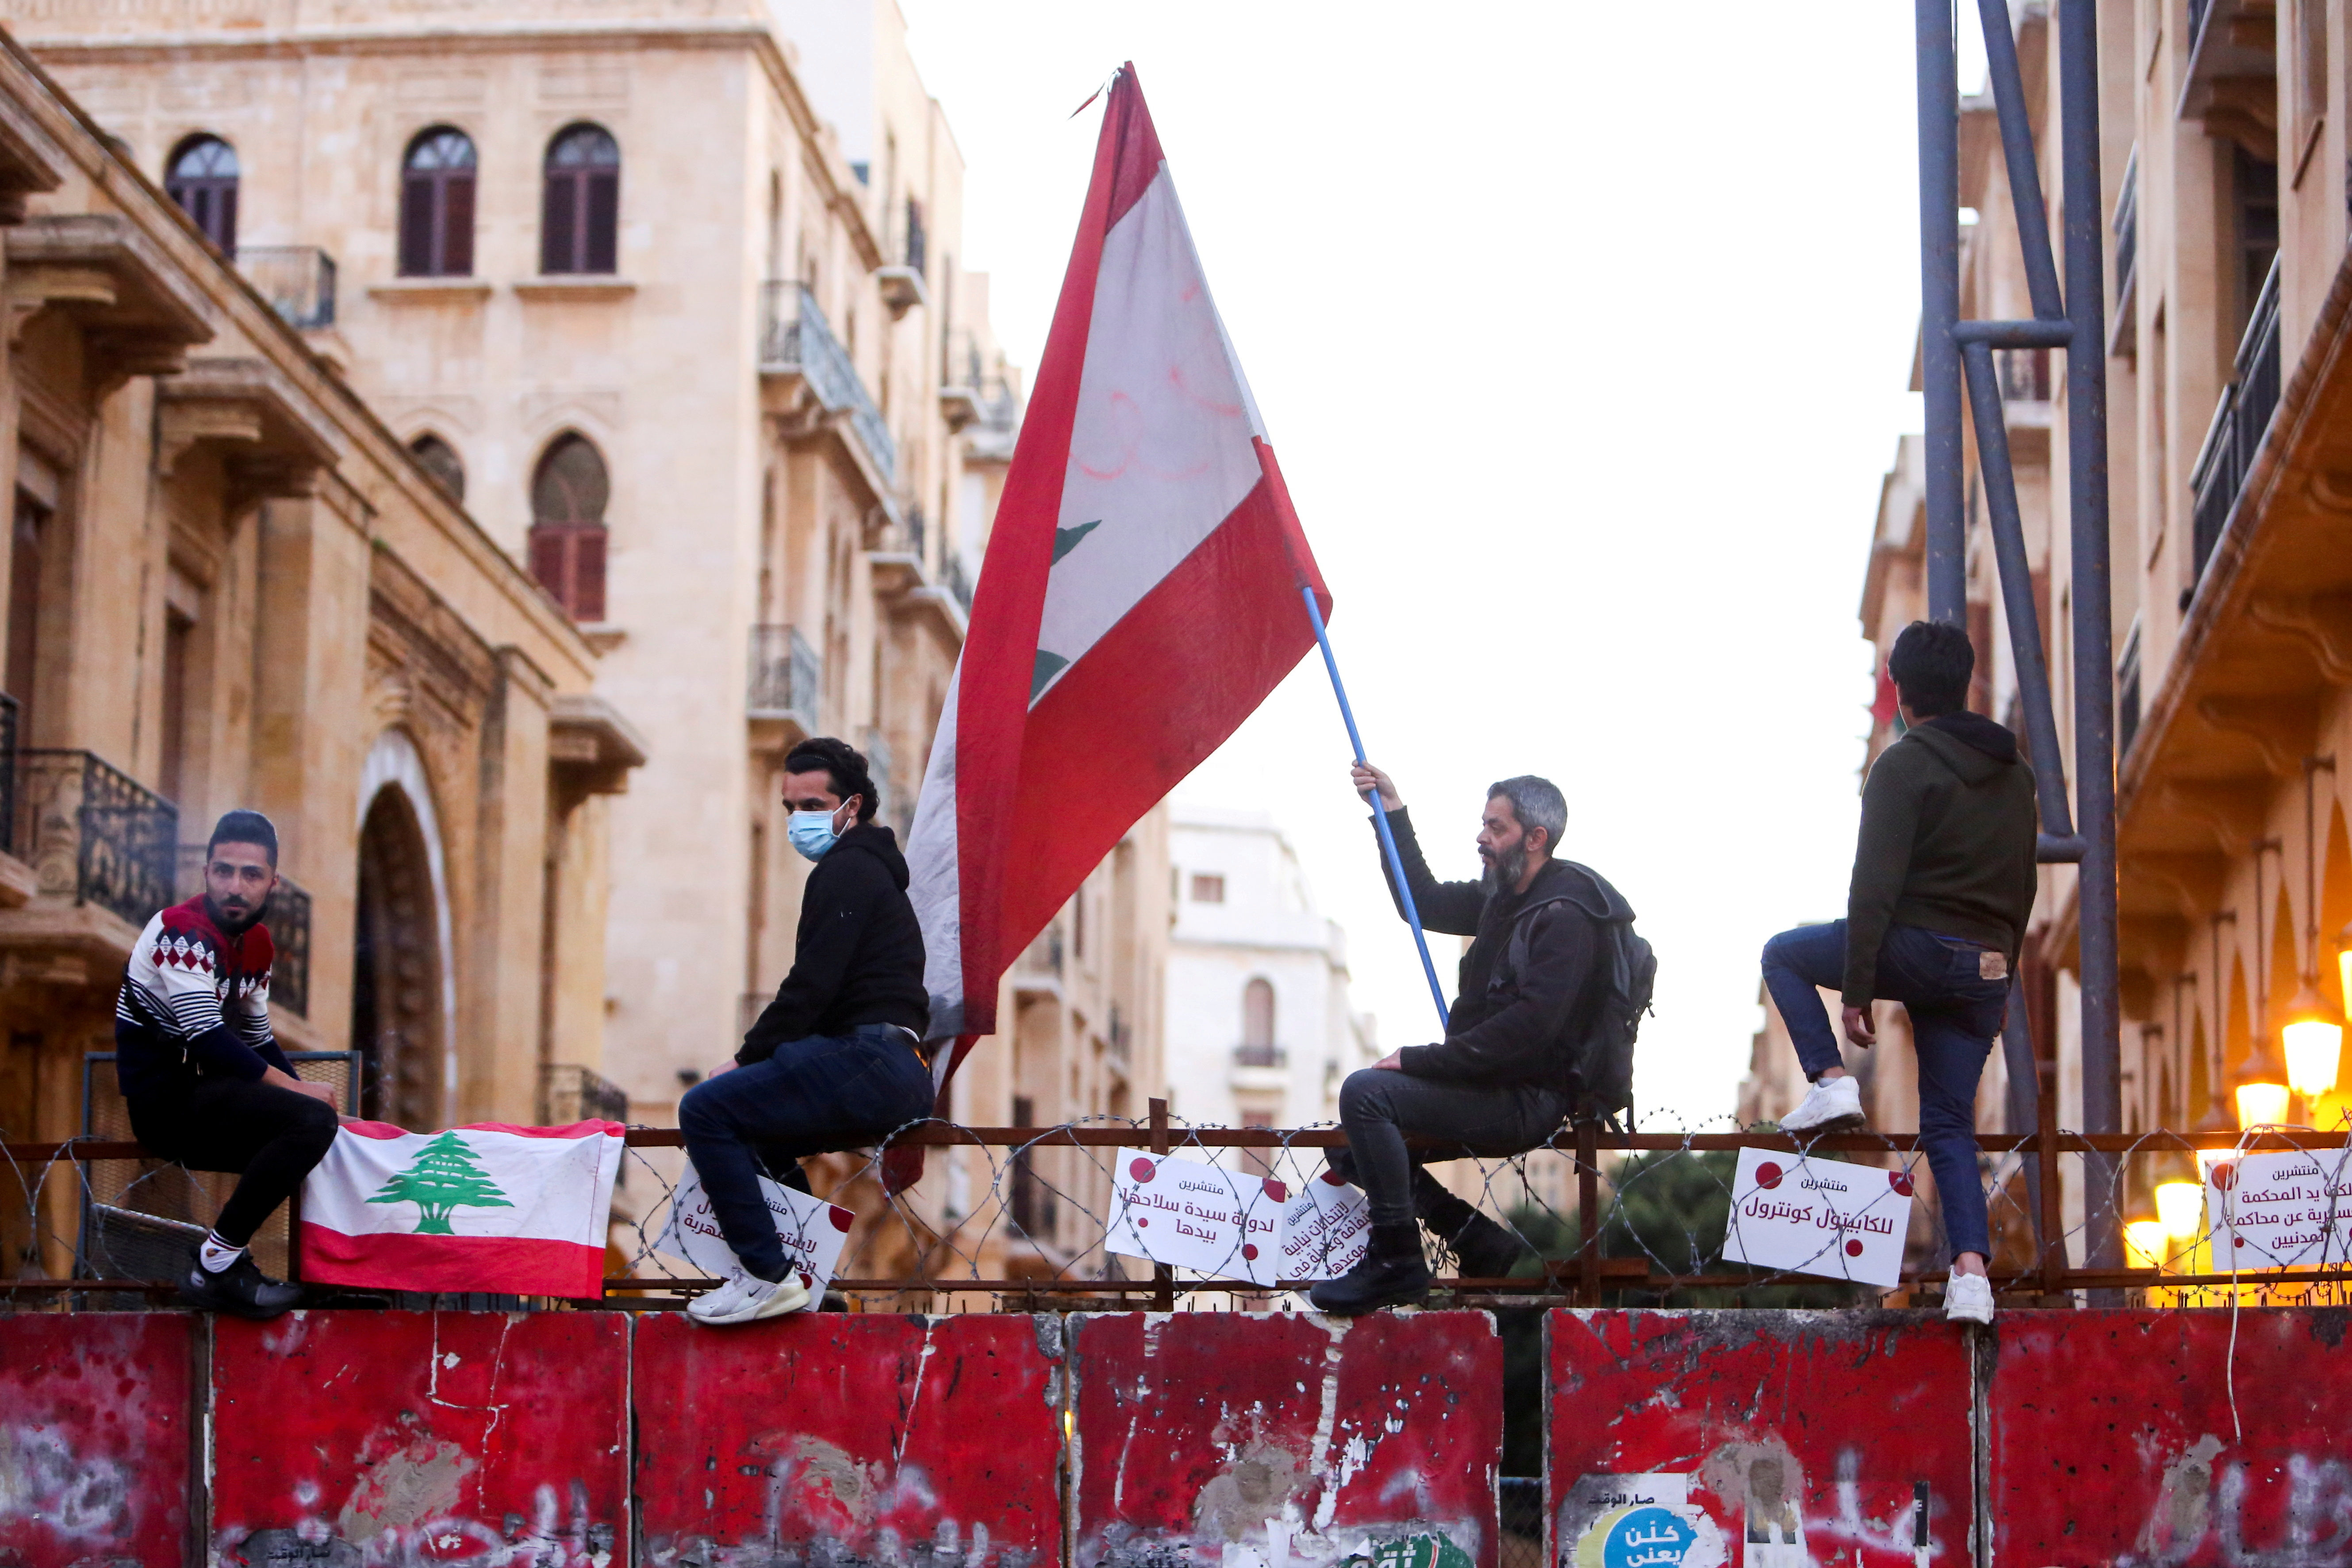 A demonstrator holds a Lebanese flag during a protest against the fall in Lebanese pound currency and mounting economic hardships, in Beirut, Lebanon March 12, 2021. REUTERS/Aziz Taher